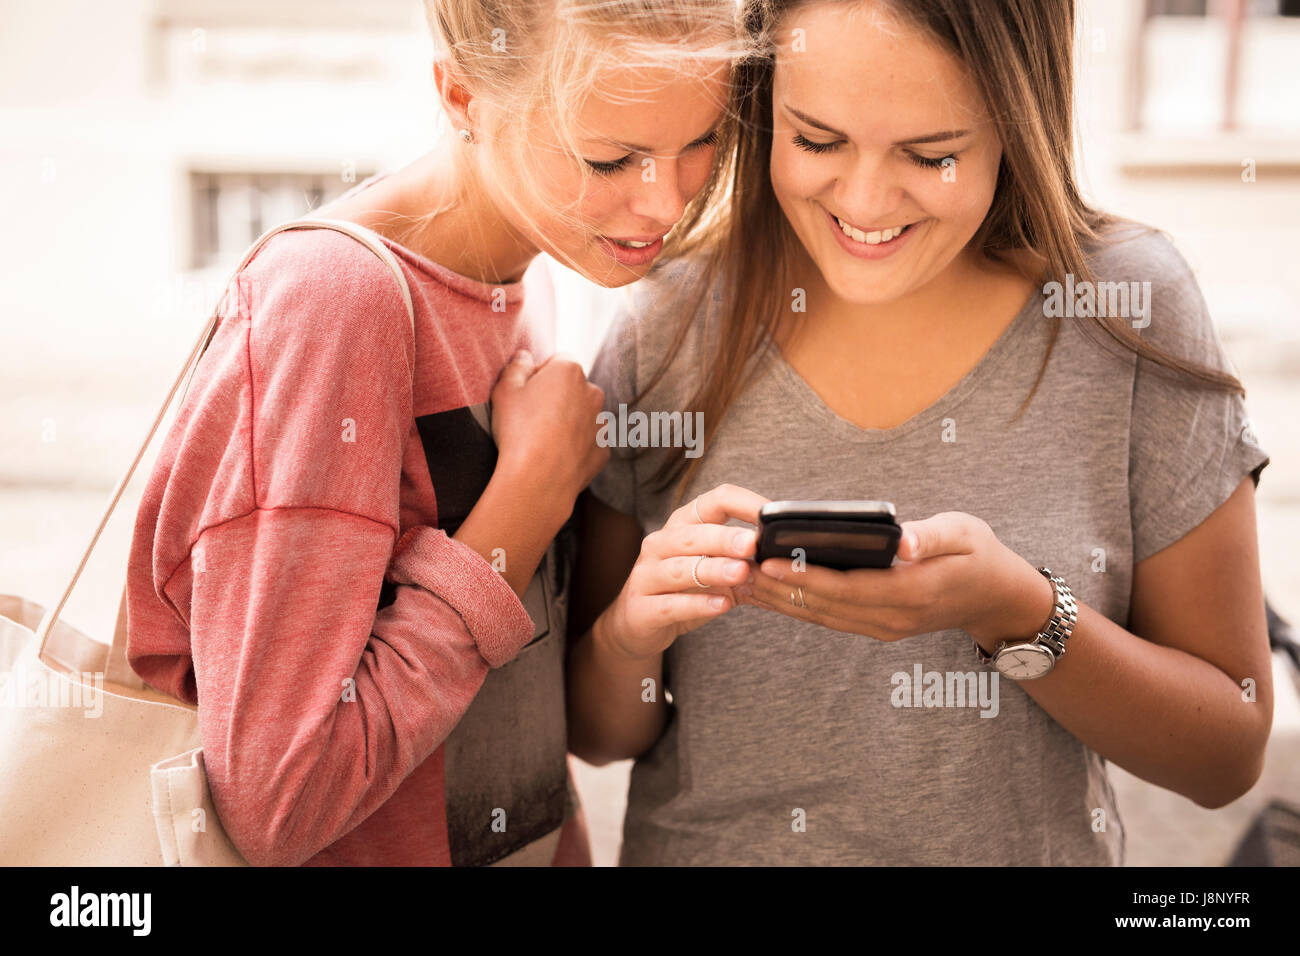 Smiling women using mobile phone Banque D'Images